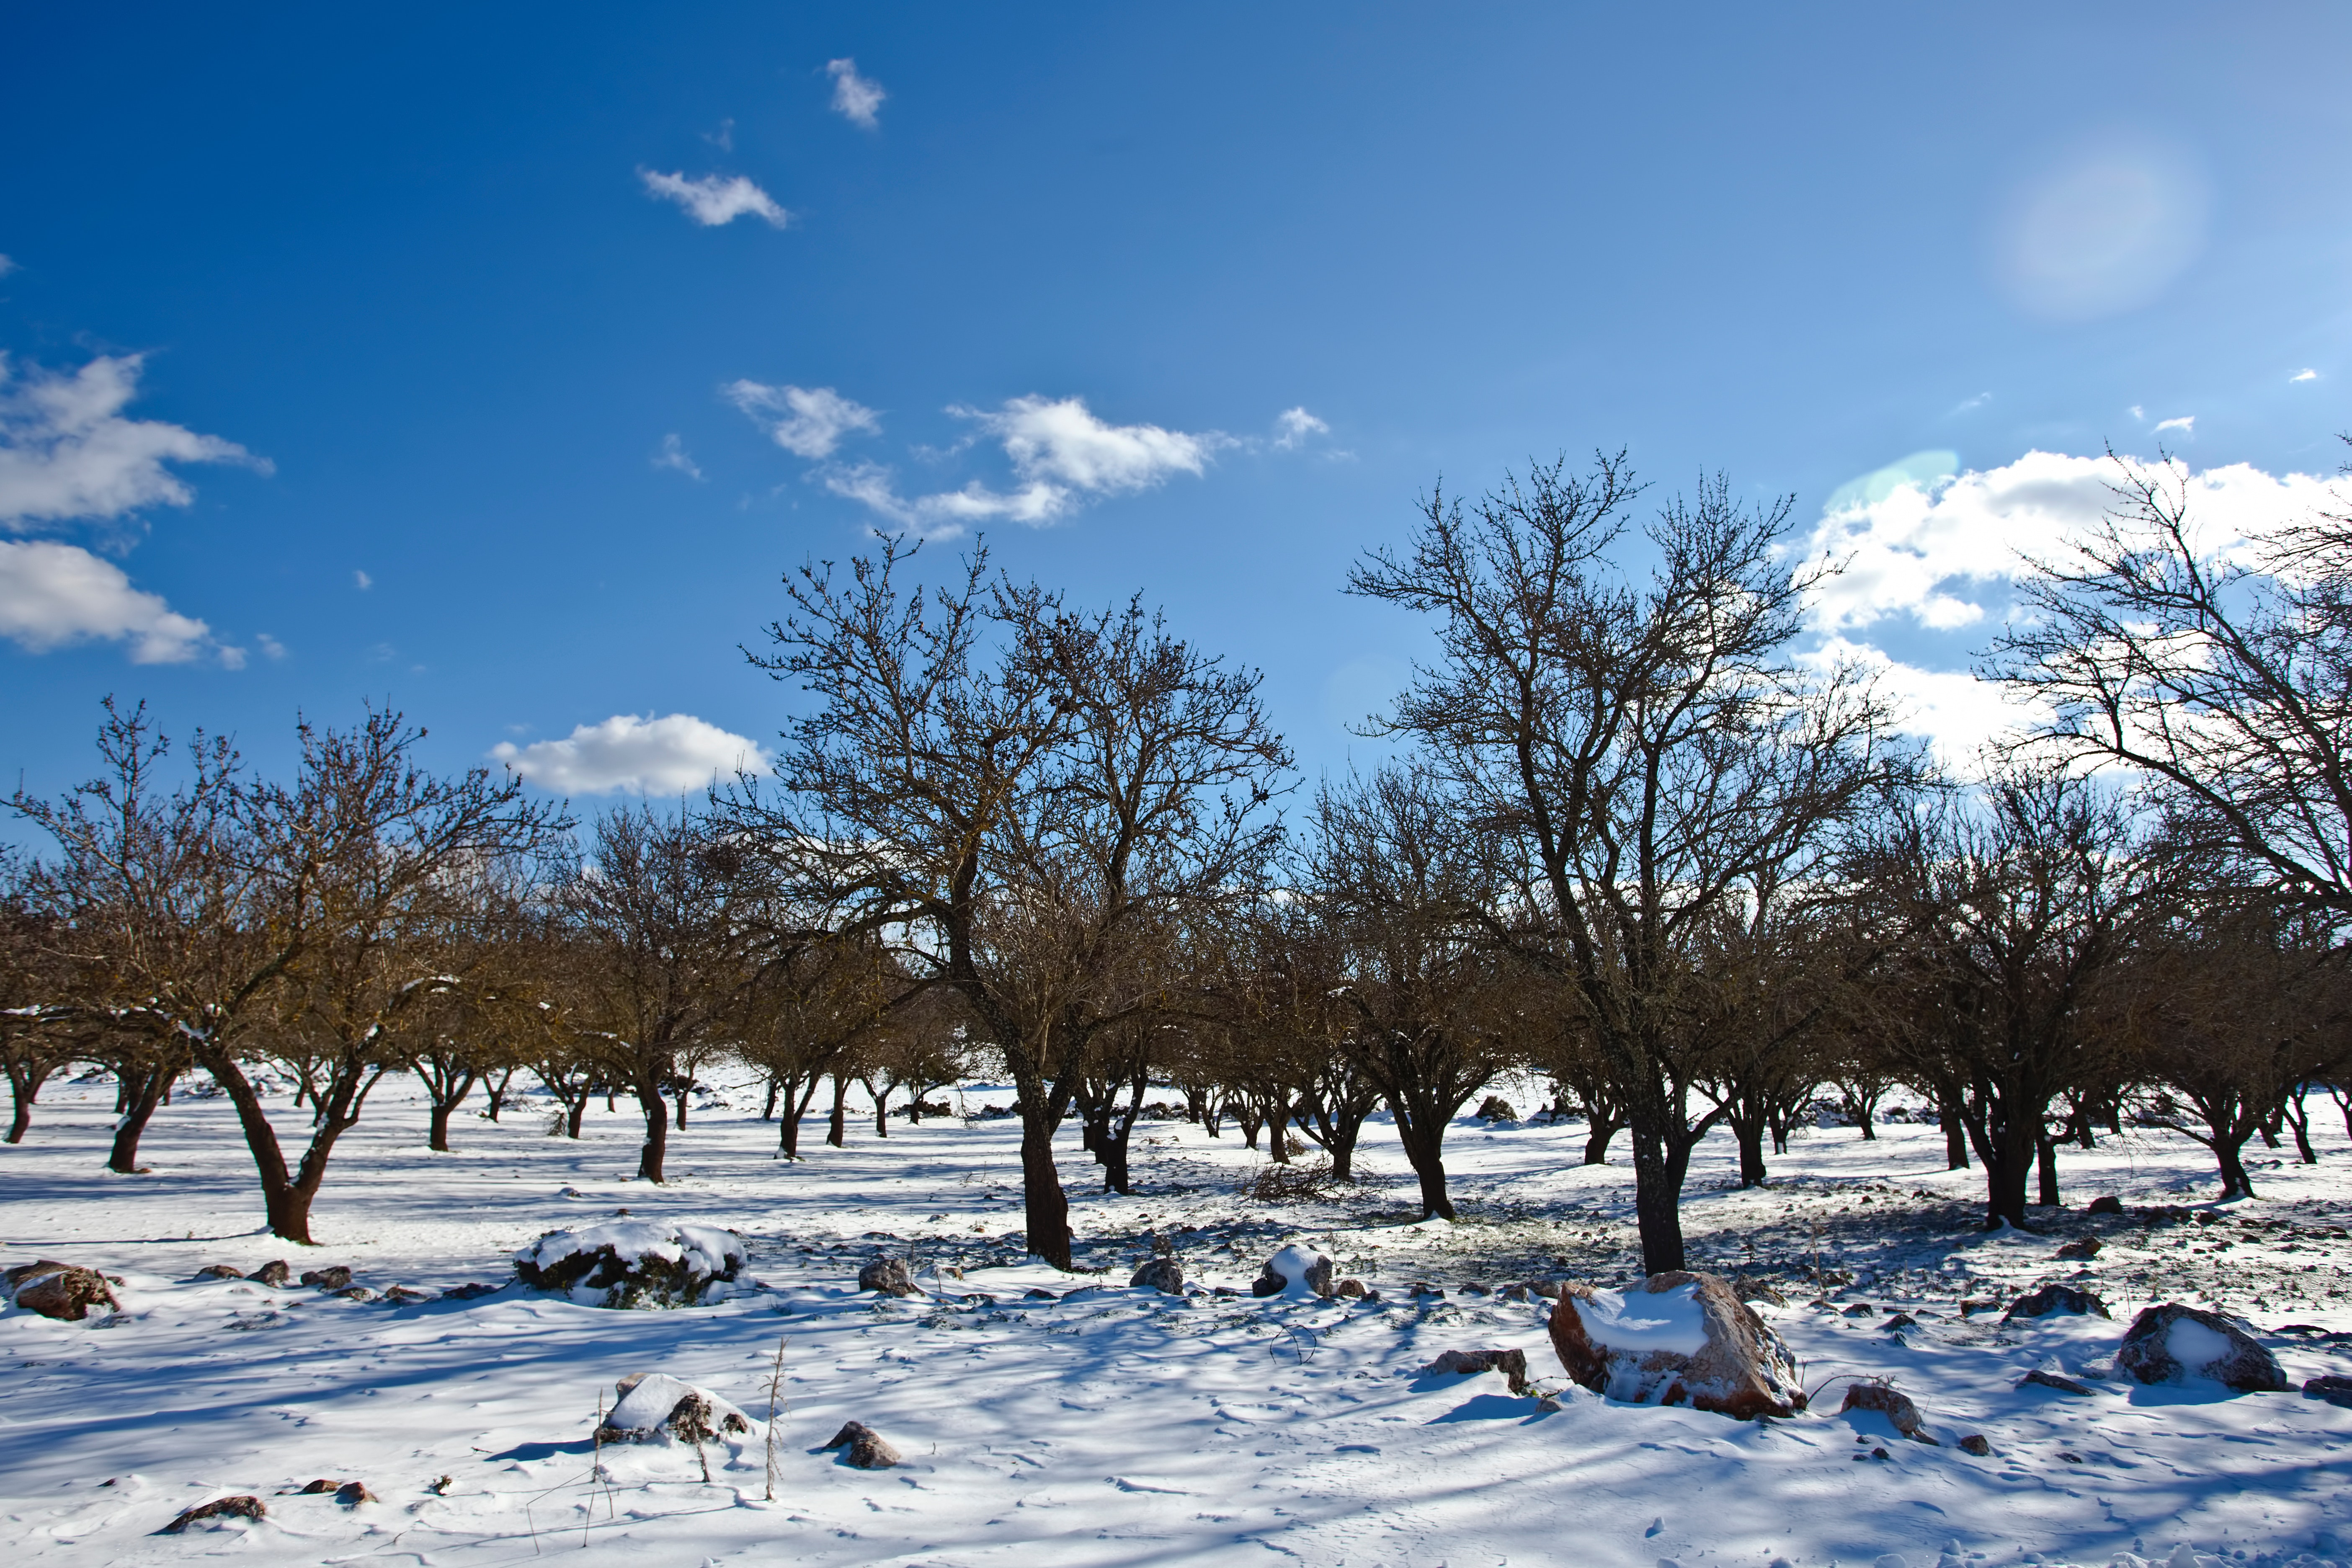 Bare Trees over Snow Ground Under Blue Cloudy Sky, Branches, Rocks, Winter landscape, Winter, HQ Photo